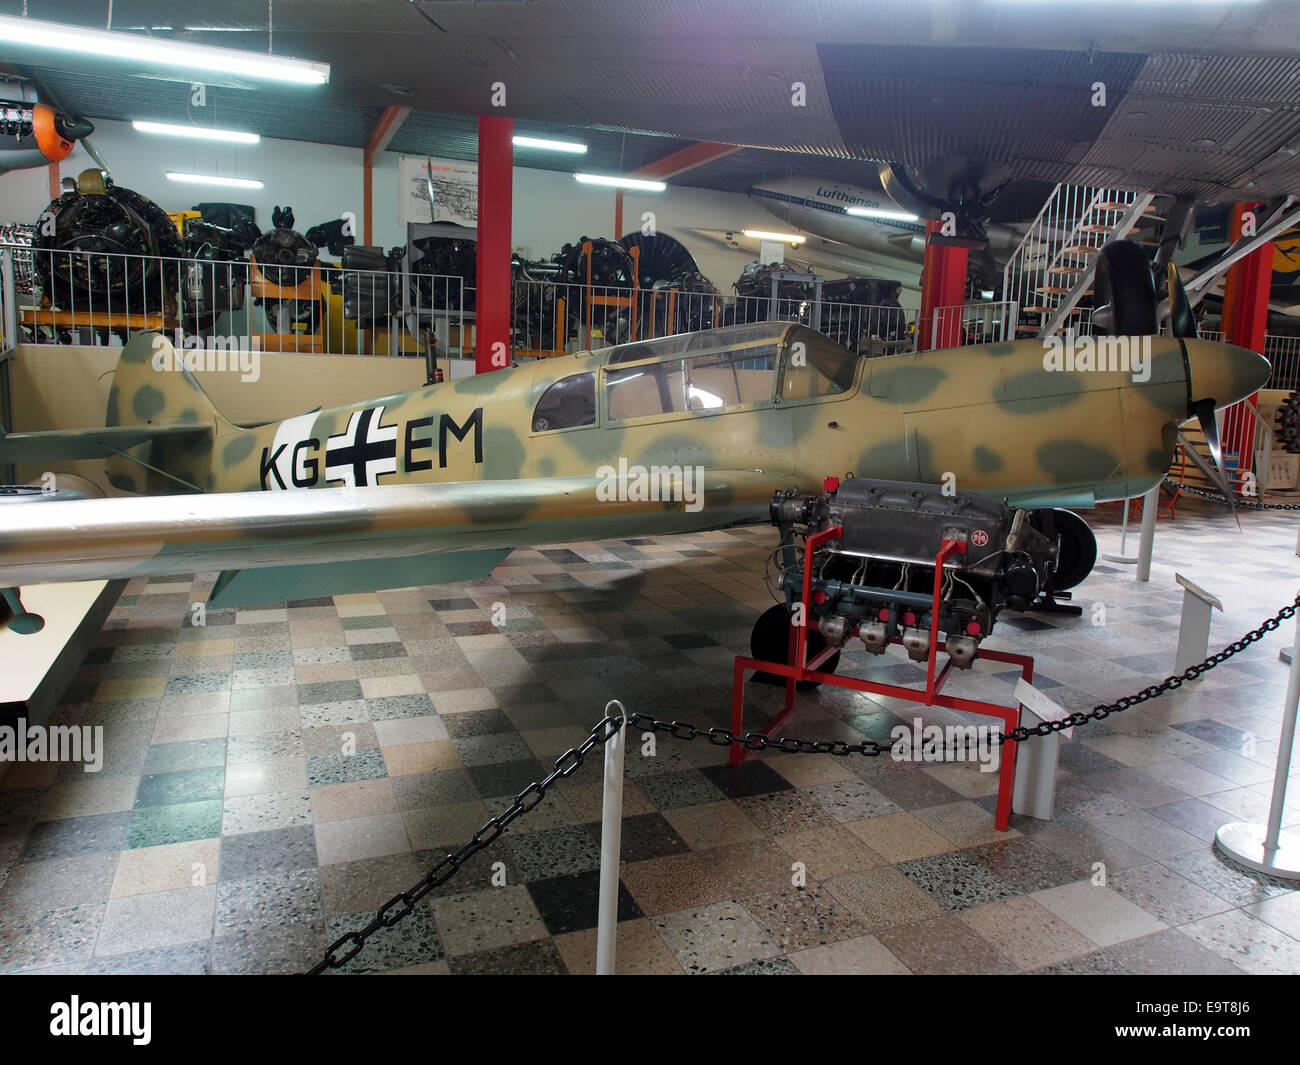 Nord 1002 - German Air Force KG EM at Flugausstellung Hermeskeil, pic1 - Stock Image